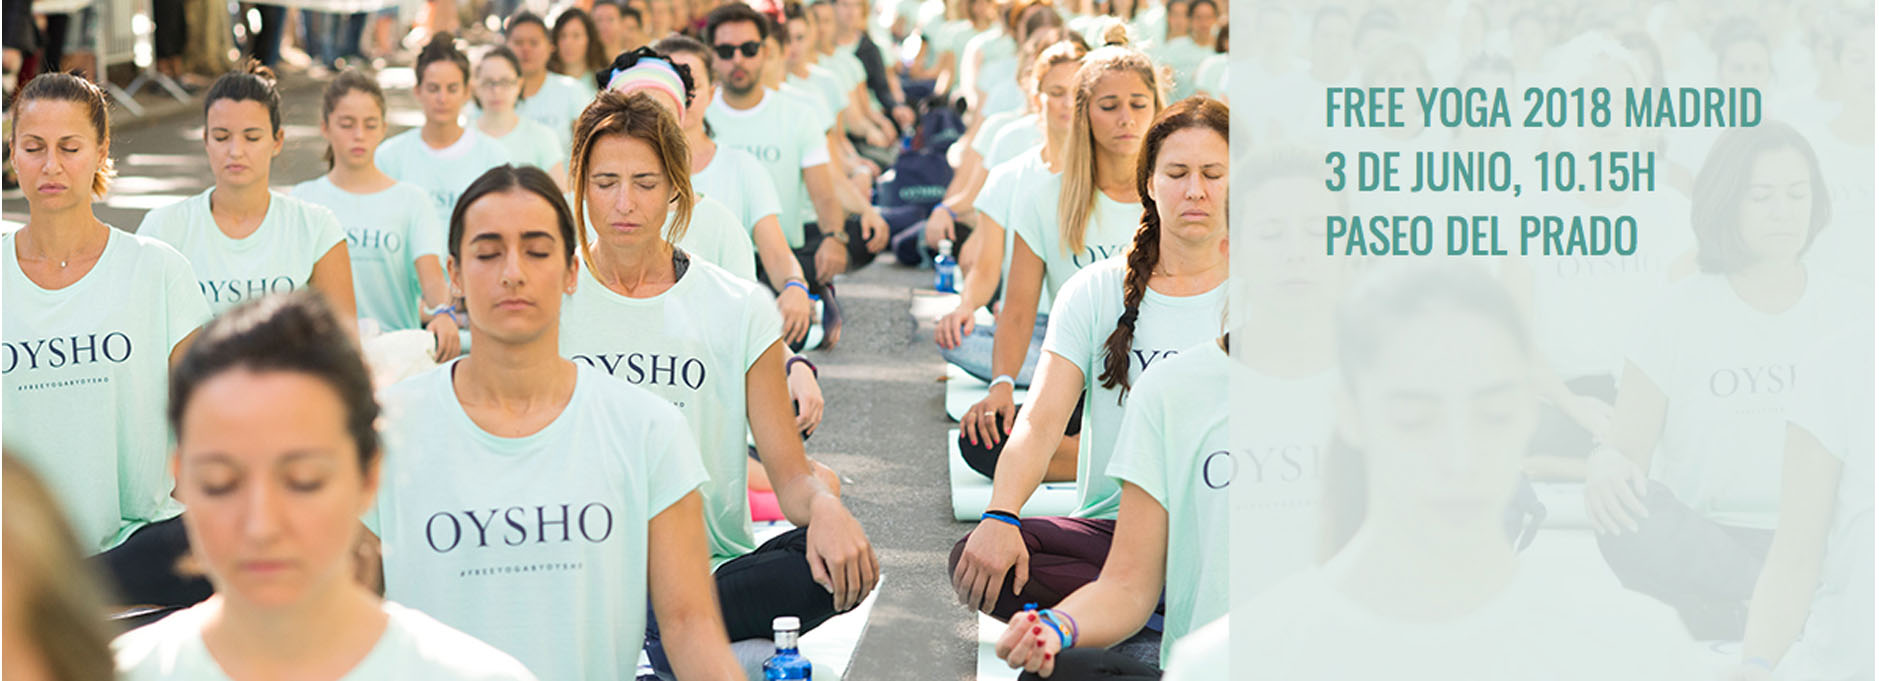 free yoga by oysho madrid